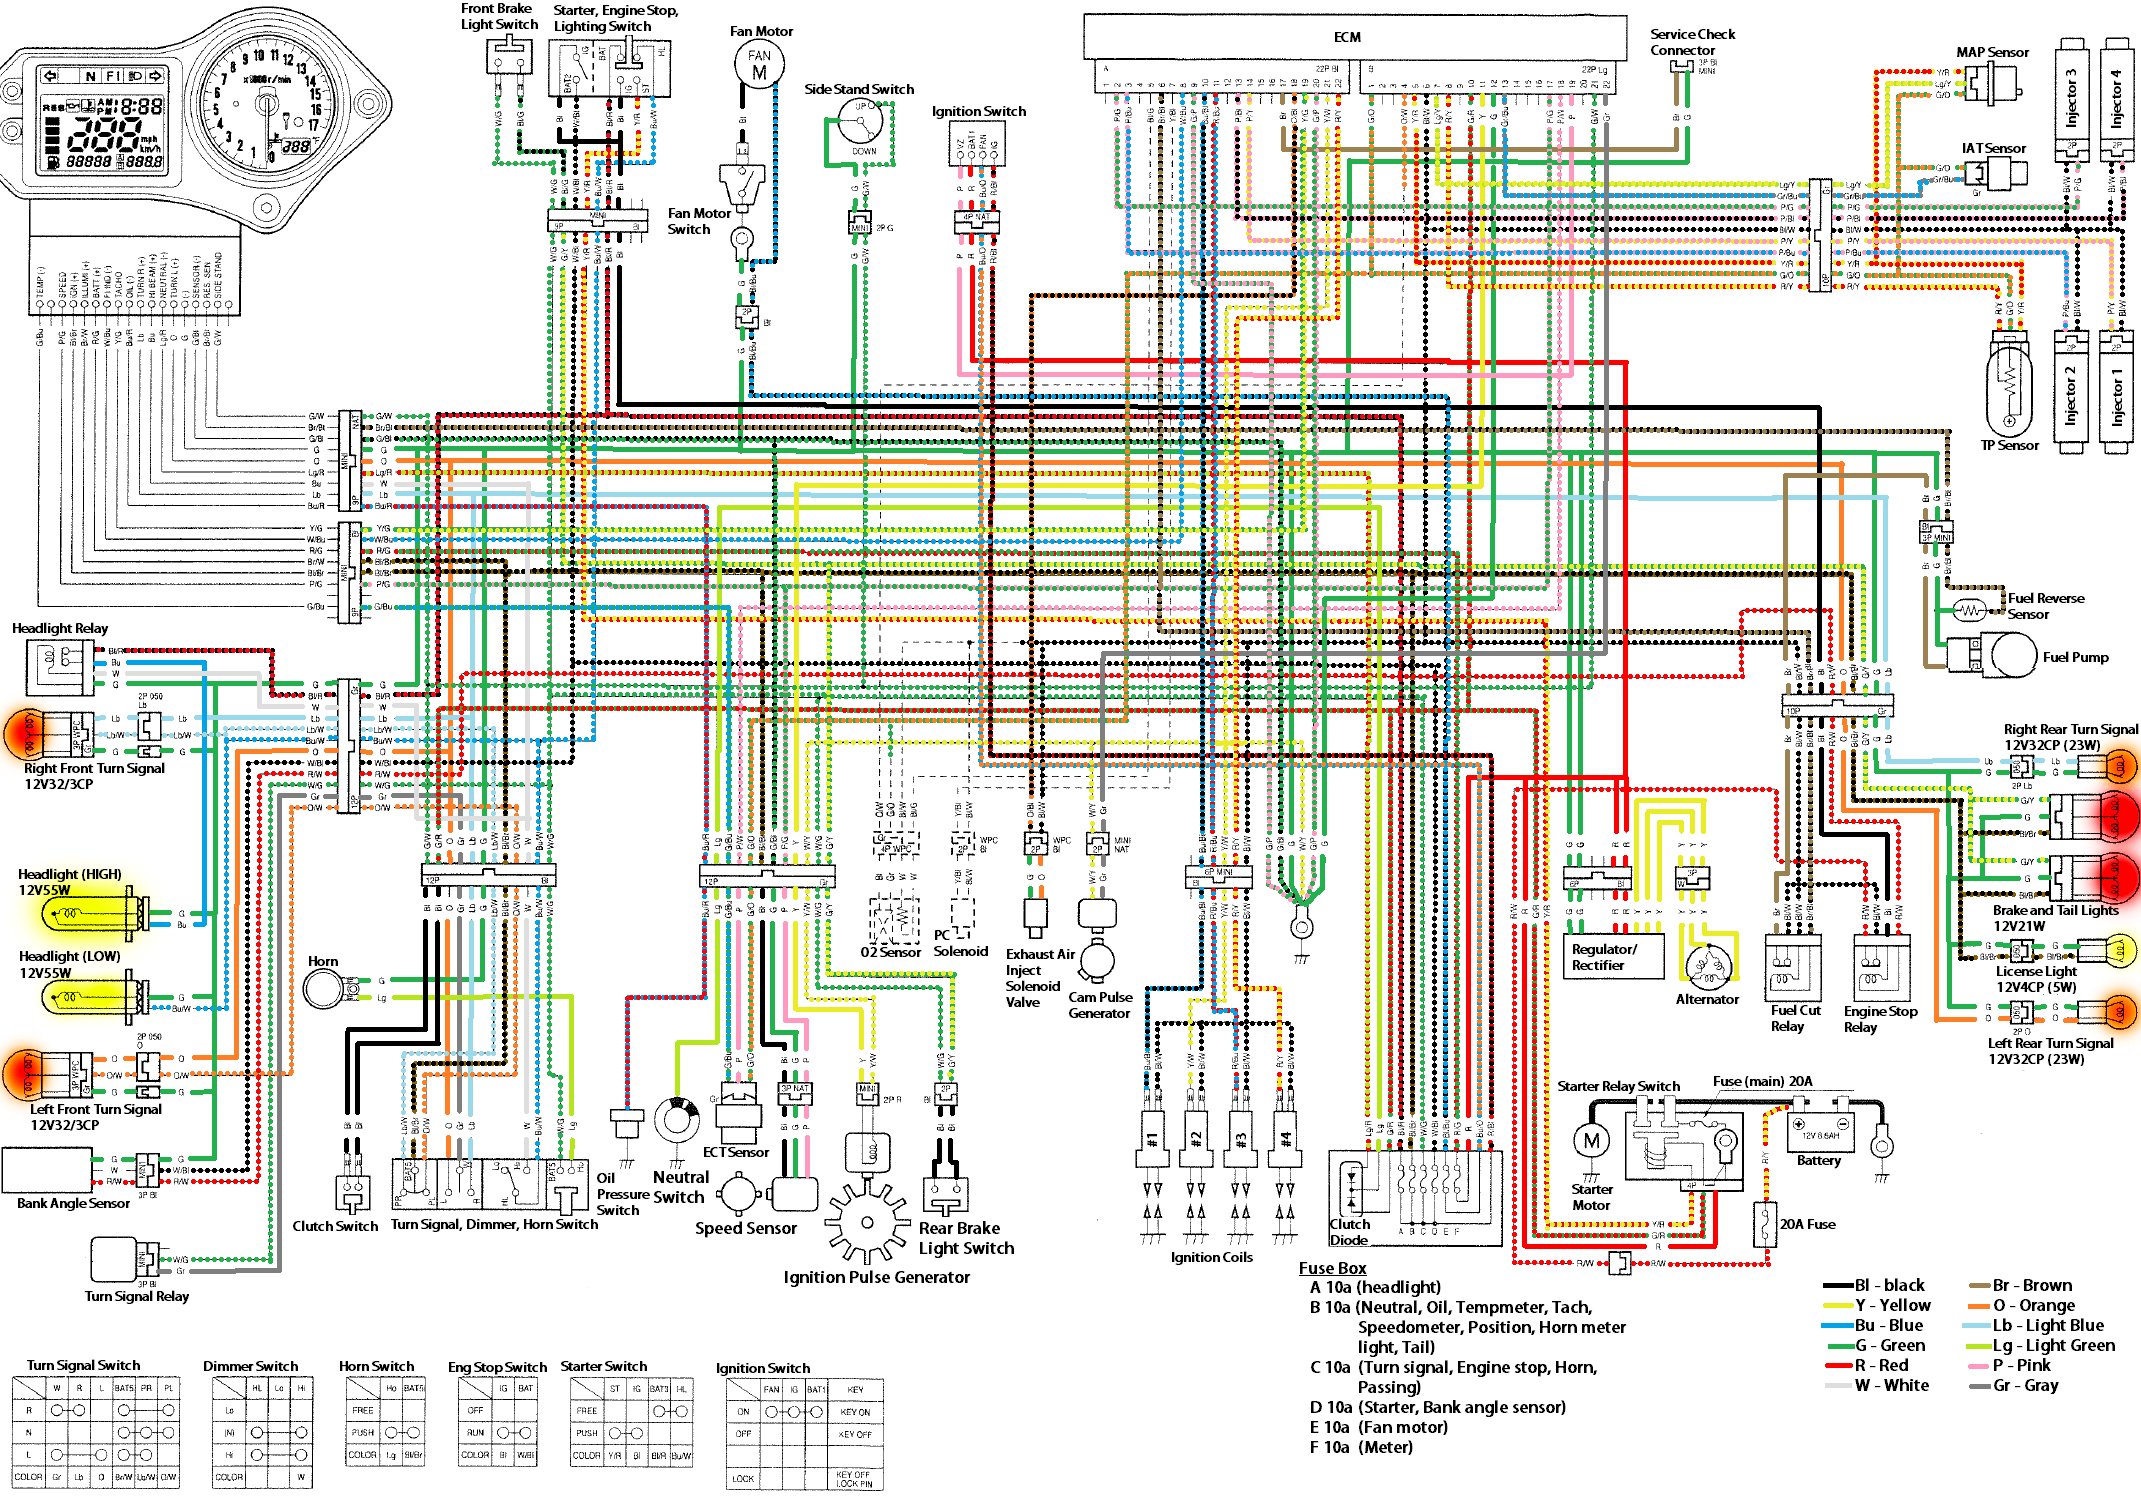 Wiring_diagram_cbr600f4i_2001 2003_color?resize\\=300%2C210 2005 cbr f4i wiring diagram zx12 wiring diagram, gsxr 600 wiring 07 gsxr 600 wiring diagram at readyjetset.co